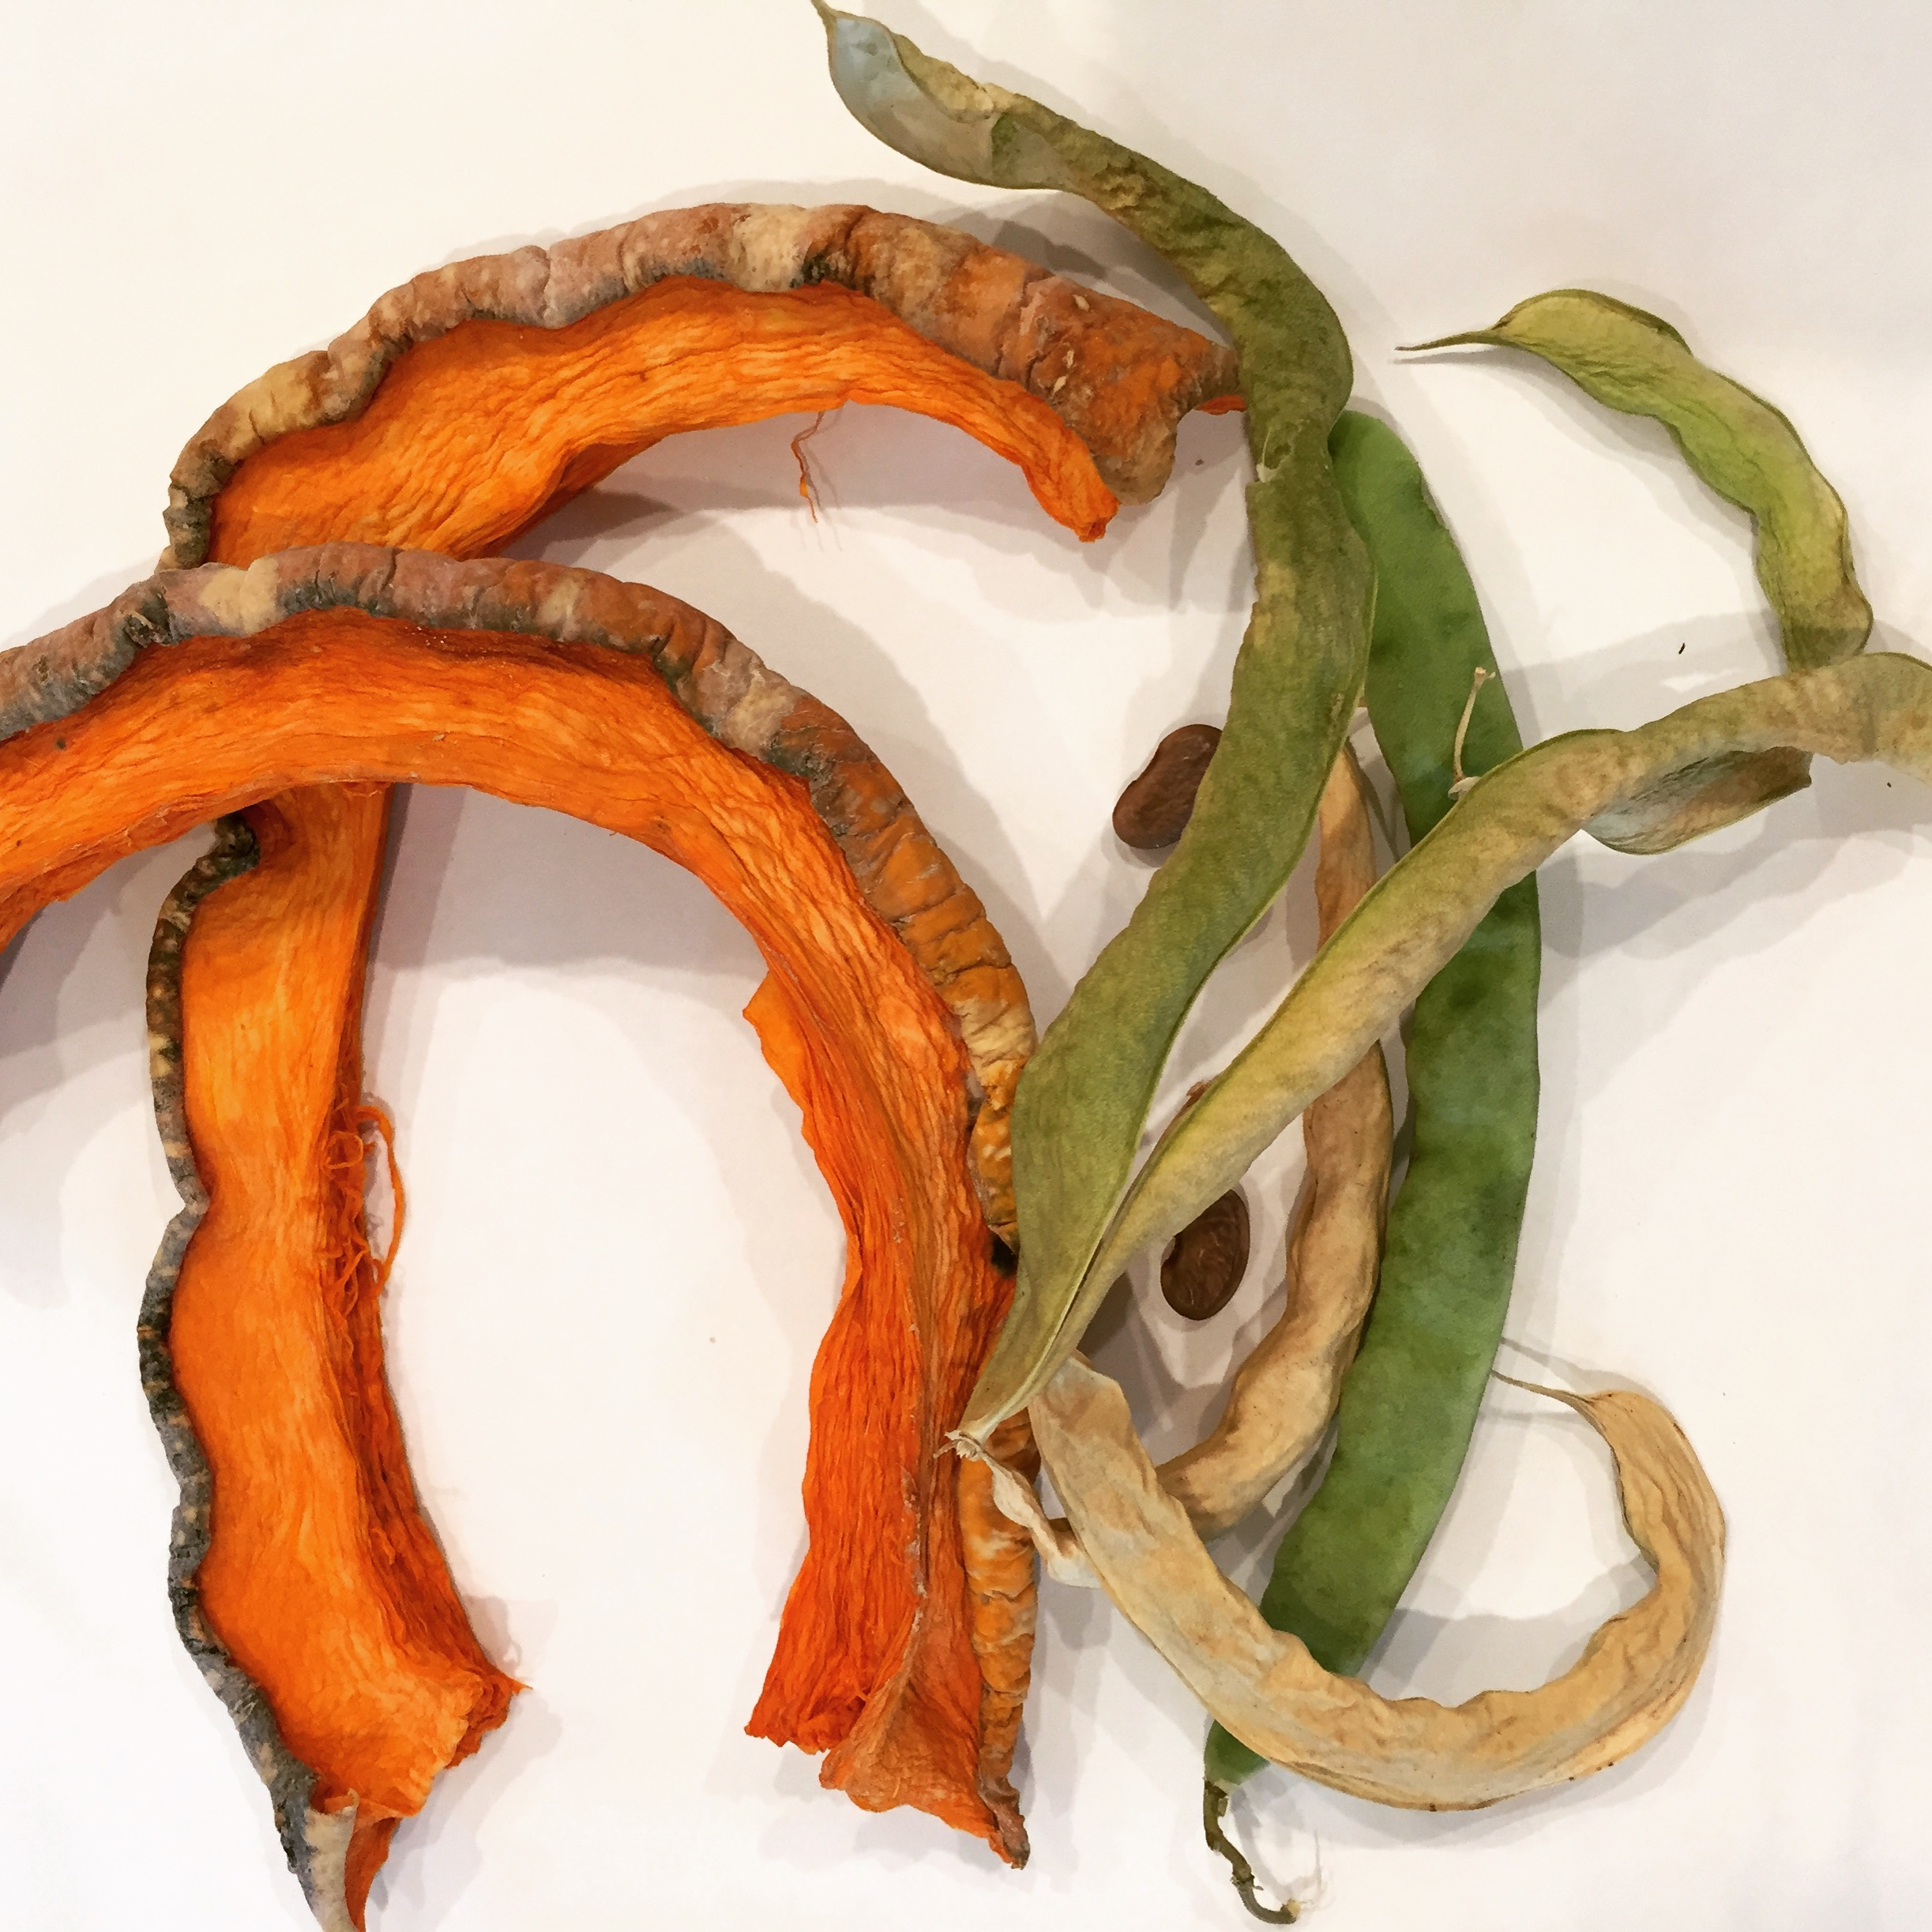 "Dried Squashes and ""Green Britches"" used for Soups and Stews"